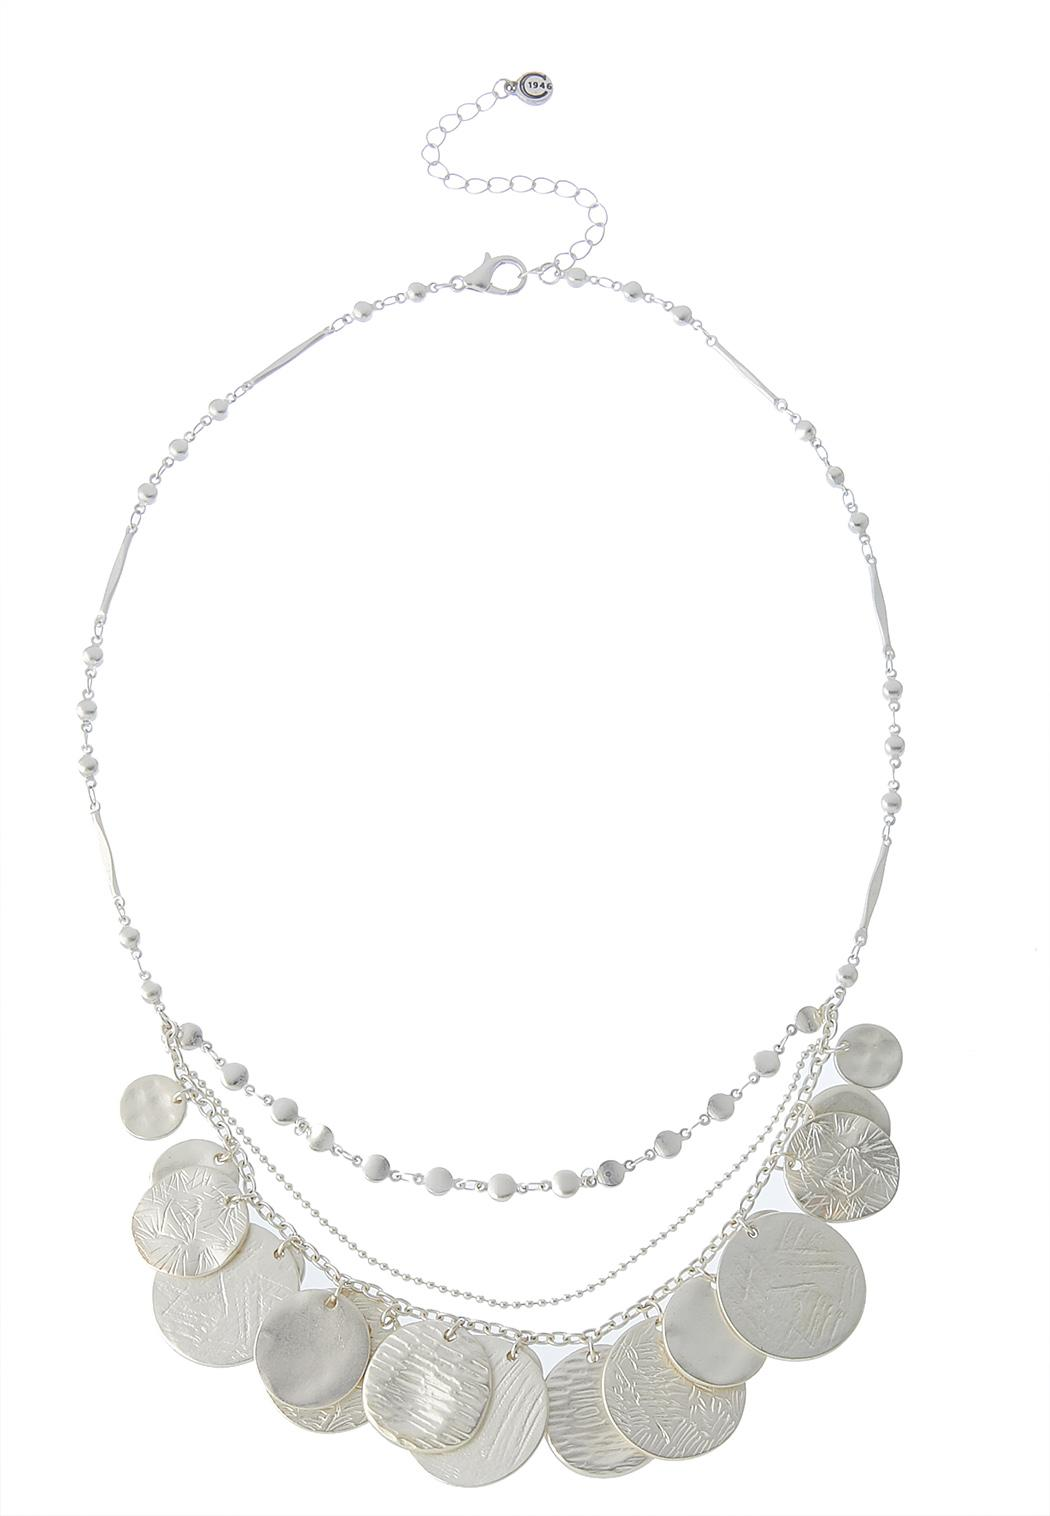 Shaky Coin Layered Necklace